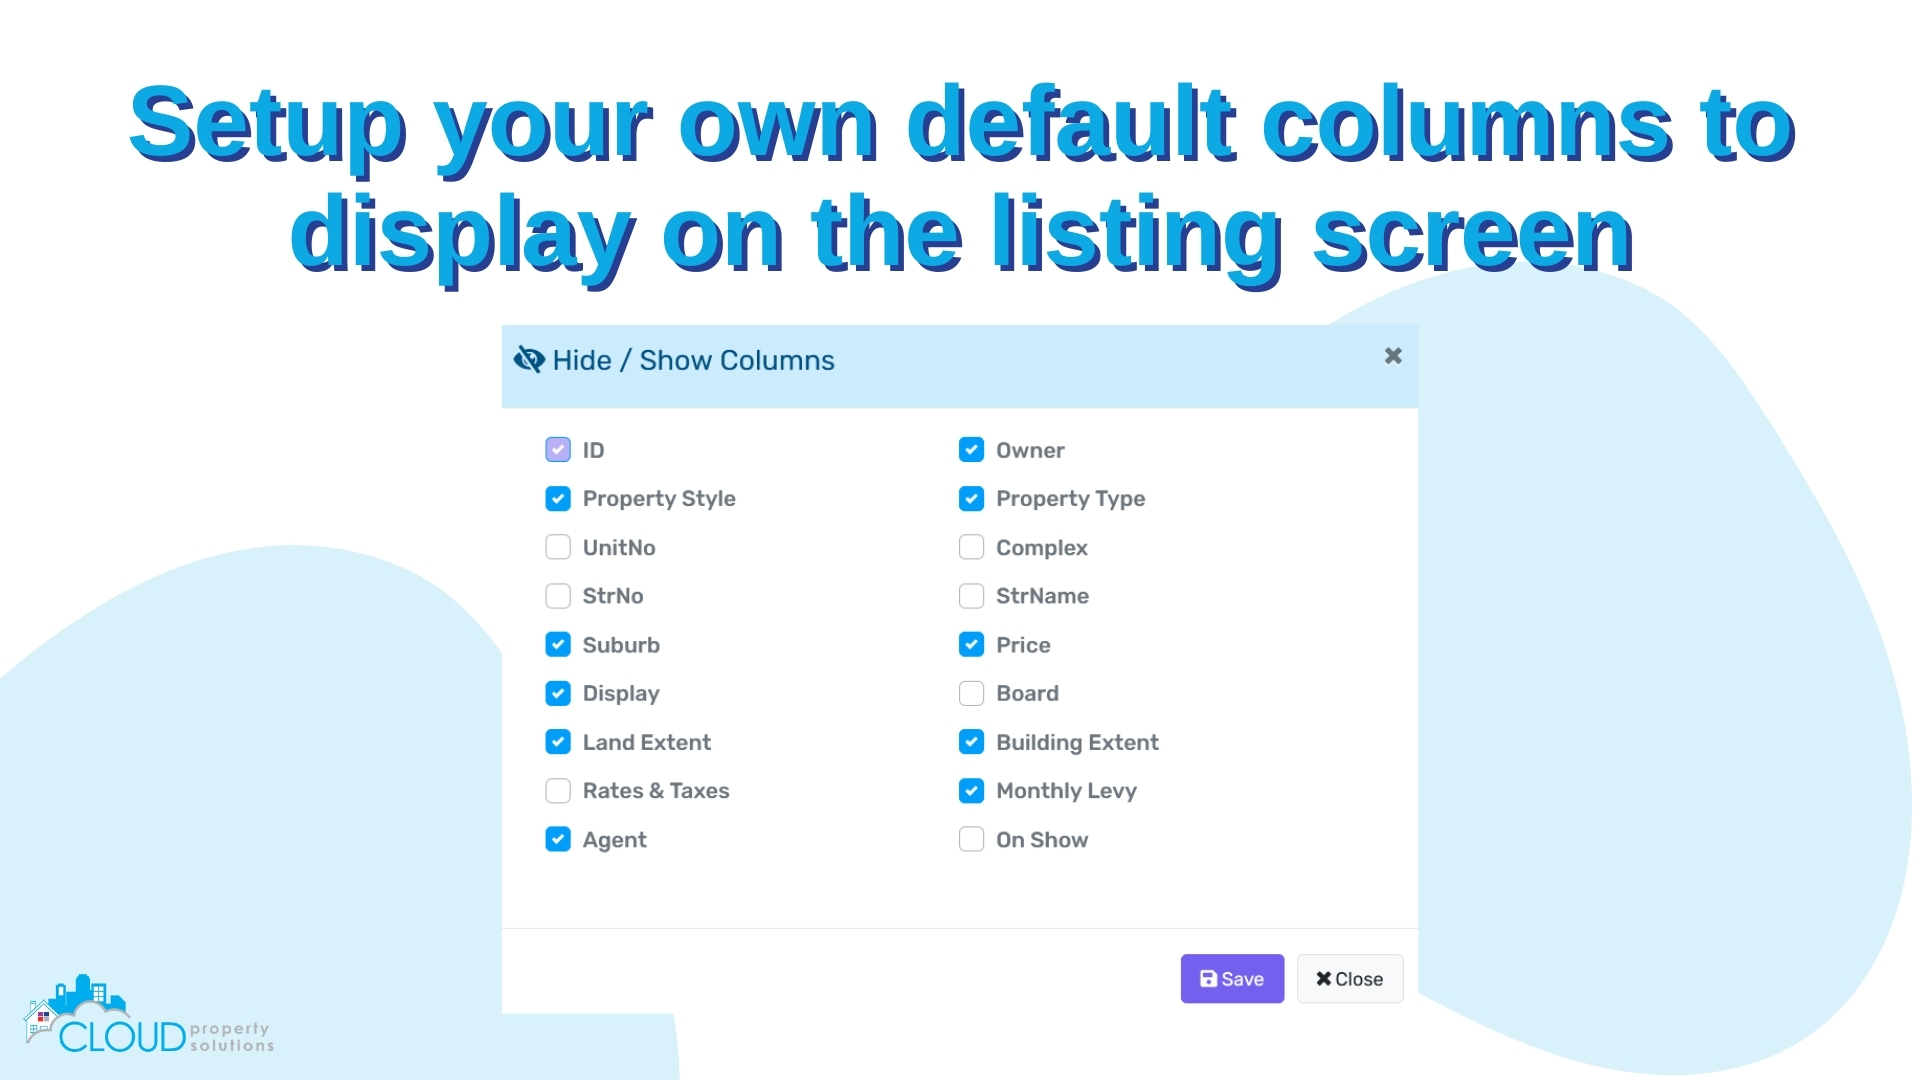 Setup your own default columns to display on the listing screen